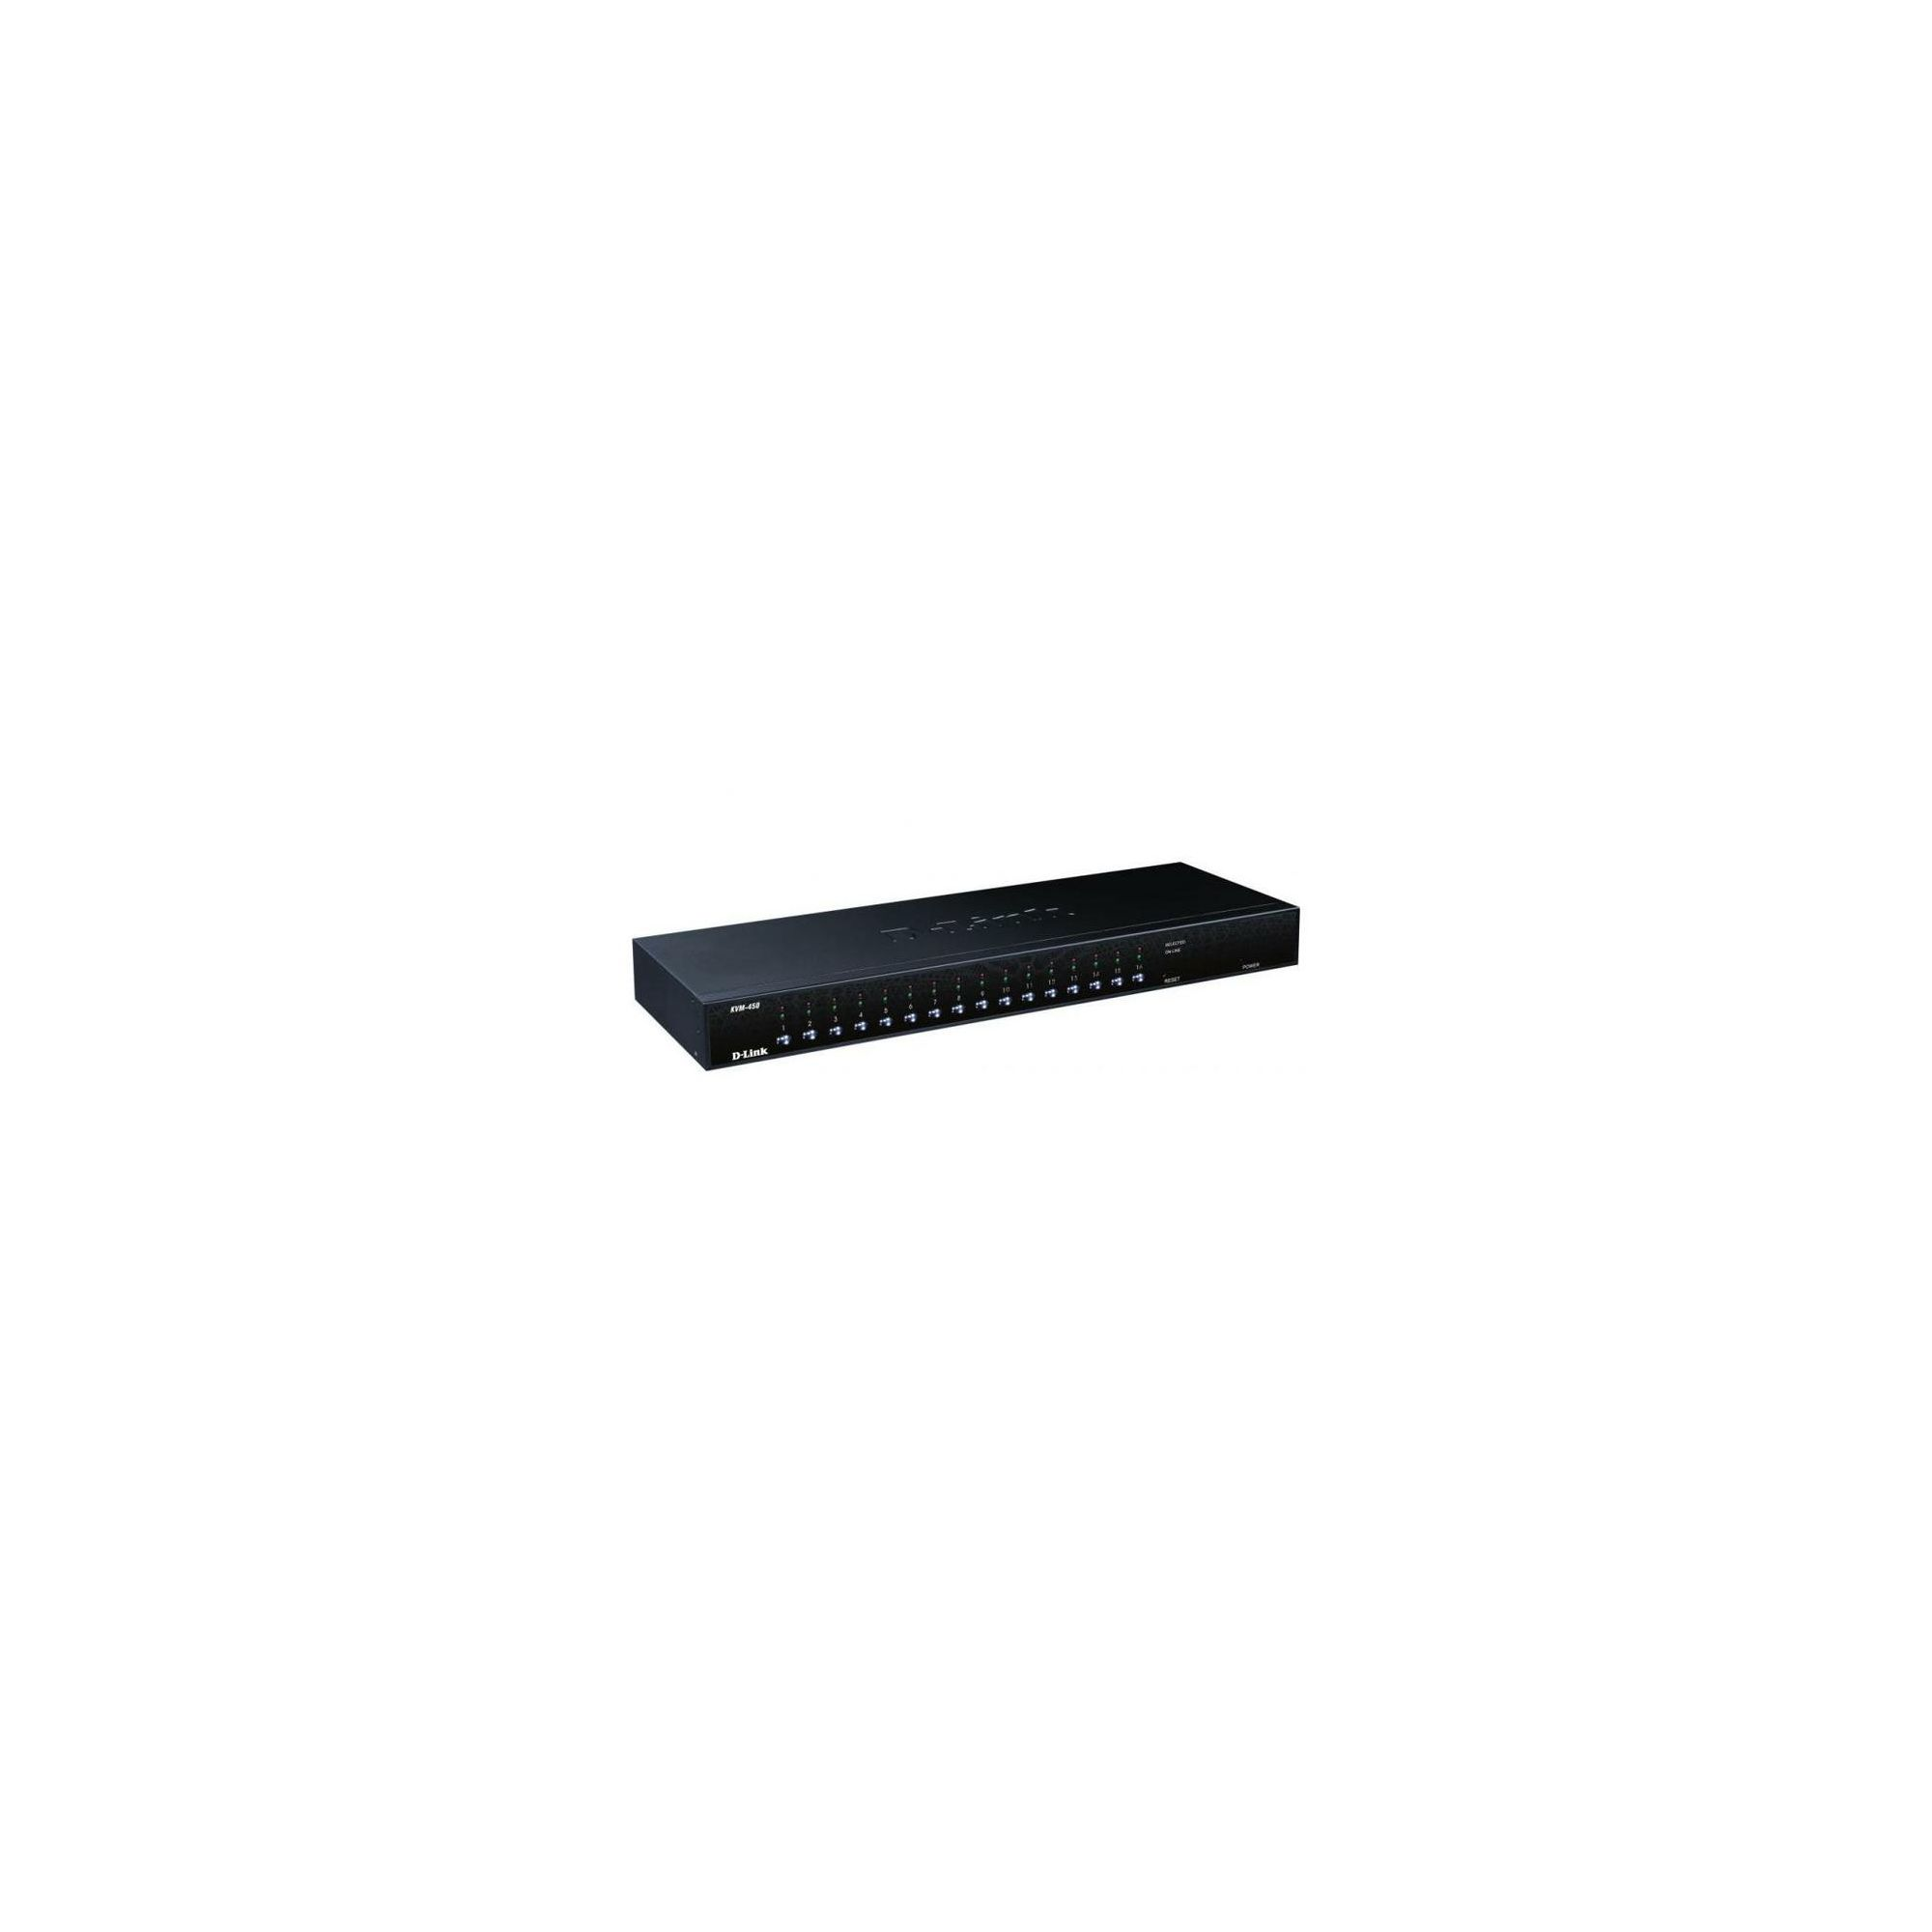 D-Link DKVM-450 16-Port PS2/USB Stackable KVM Switch at Tescos Direct